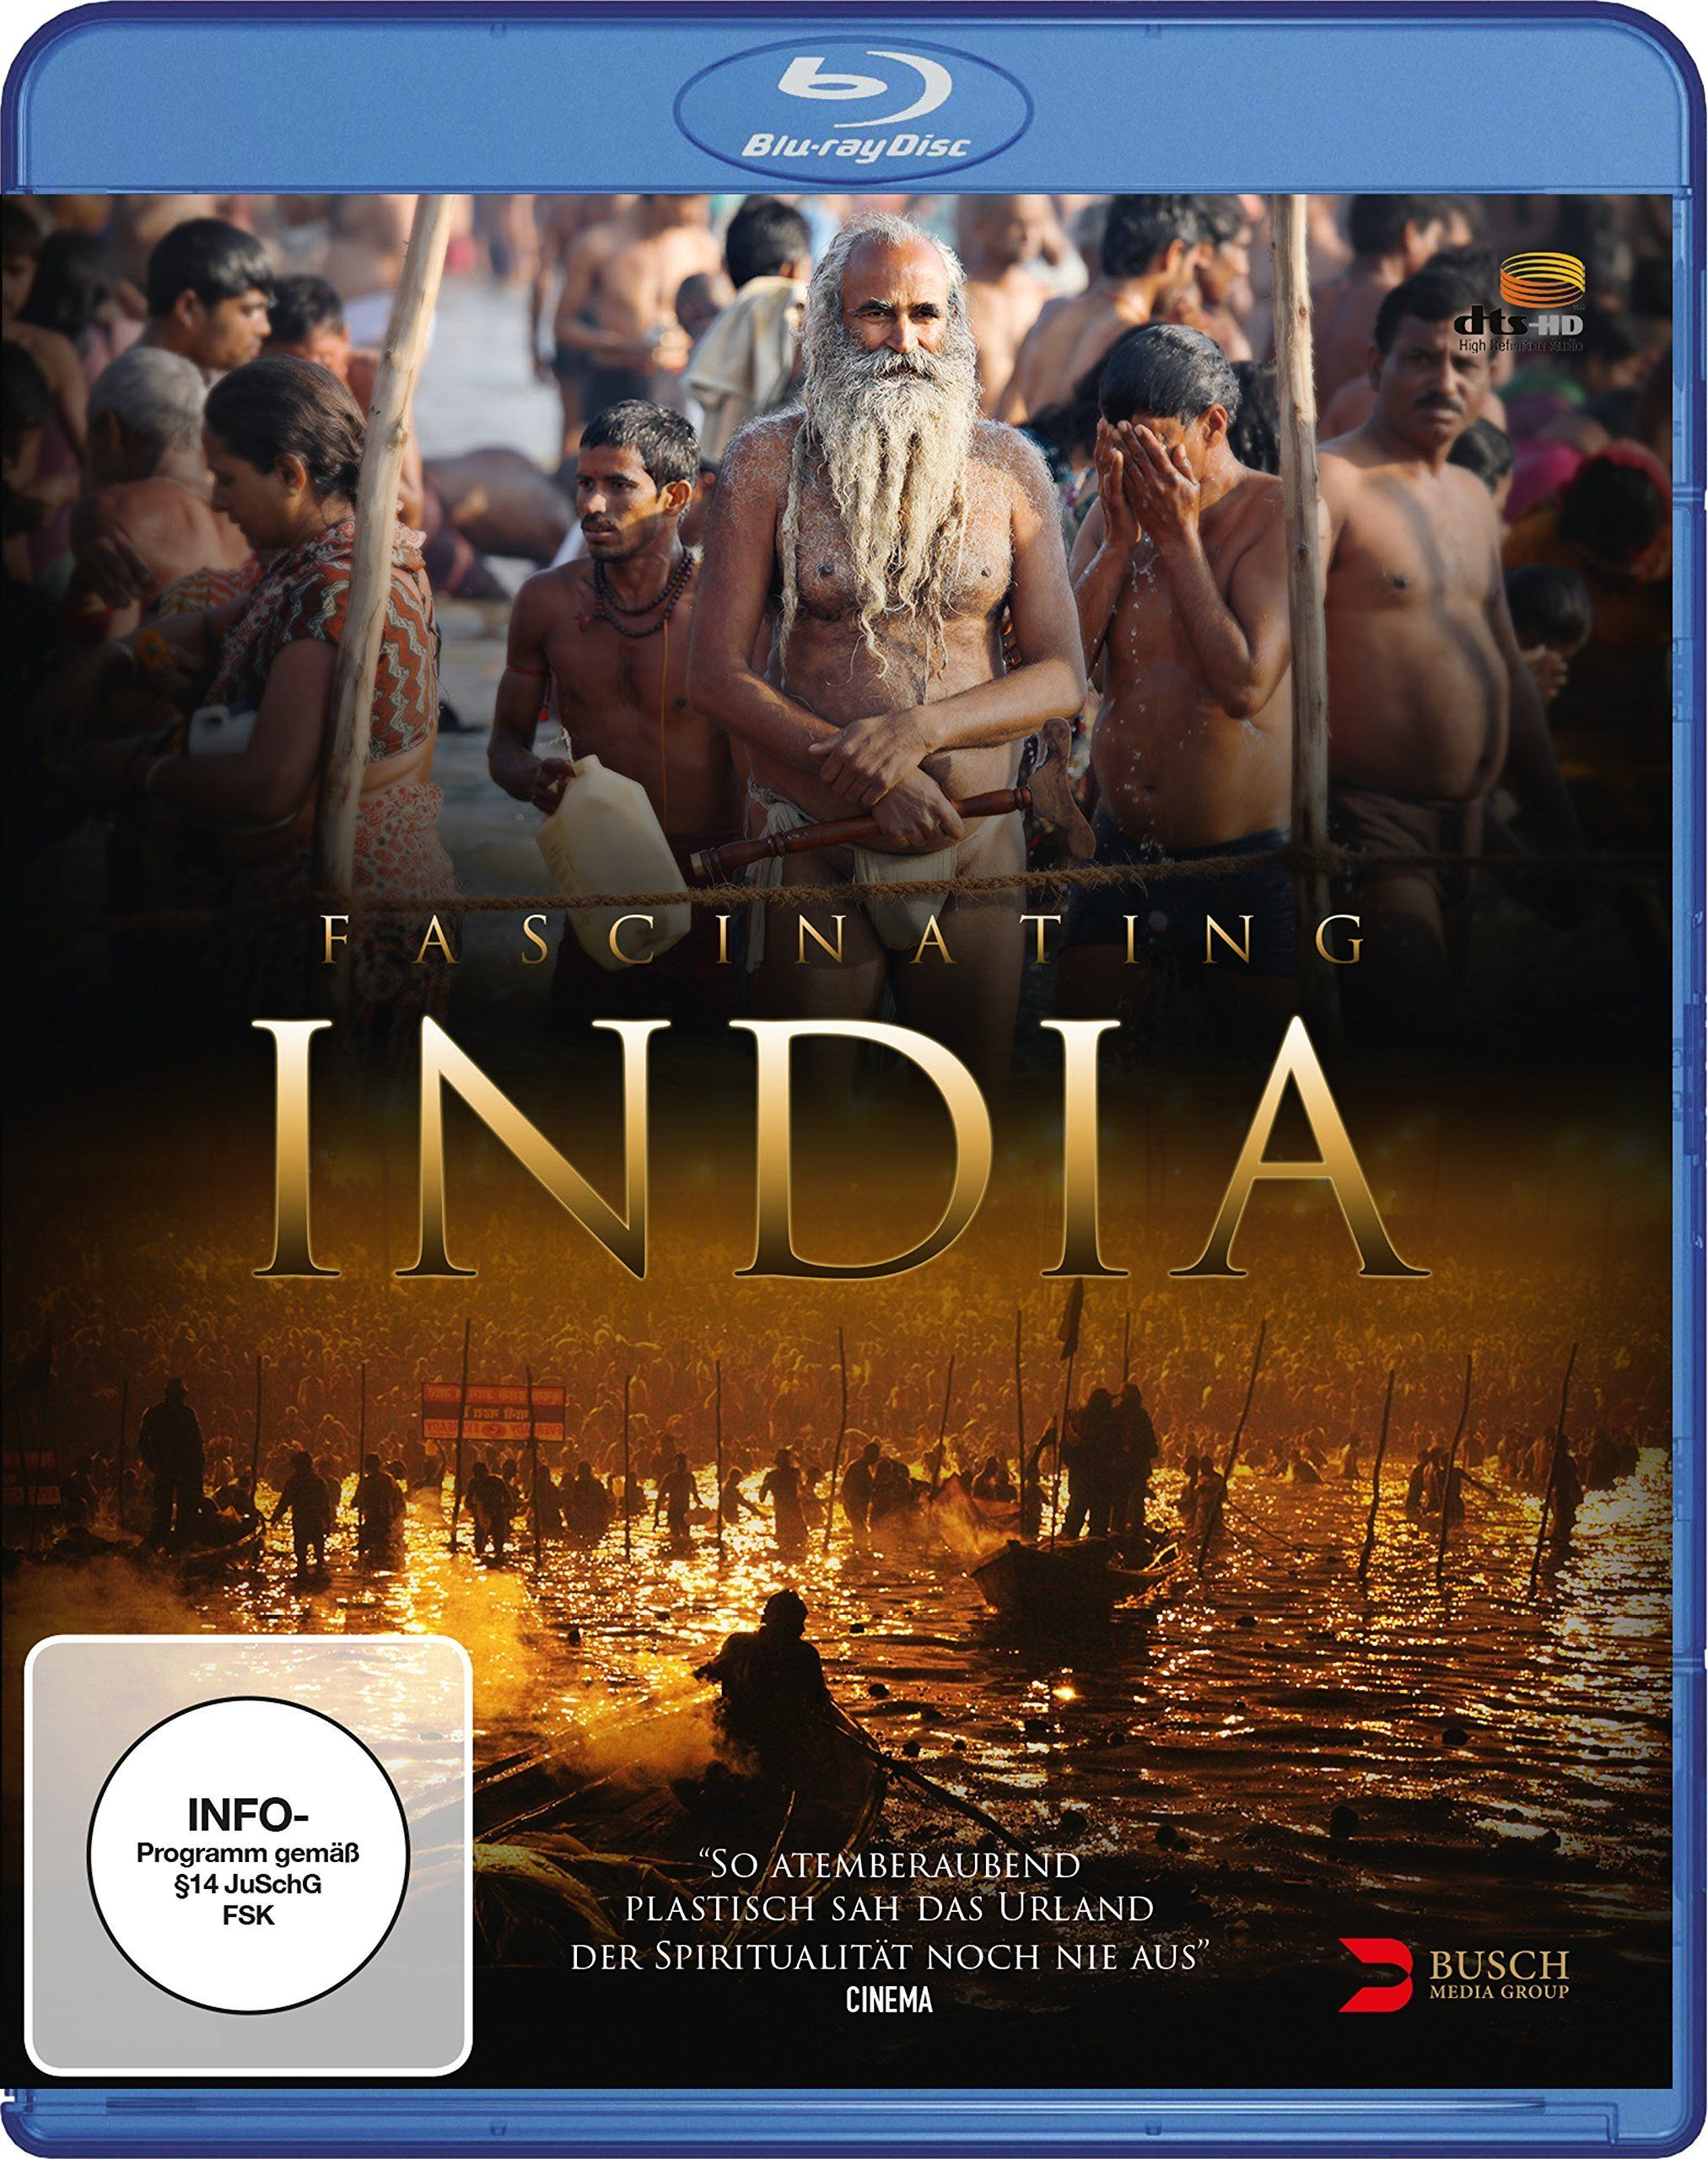 Fascinating India 3D (2014) ISO BDRA 3D 2D BluRay AVC DTS ITA DTS-HD ENG - DDN